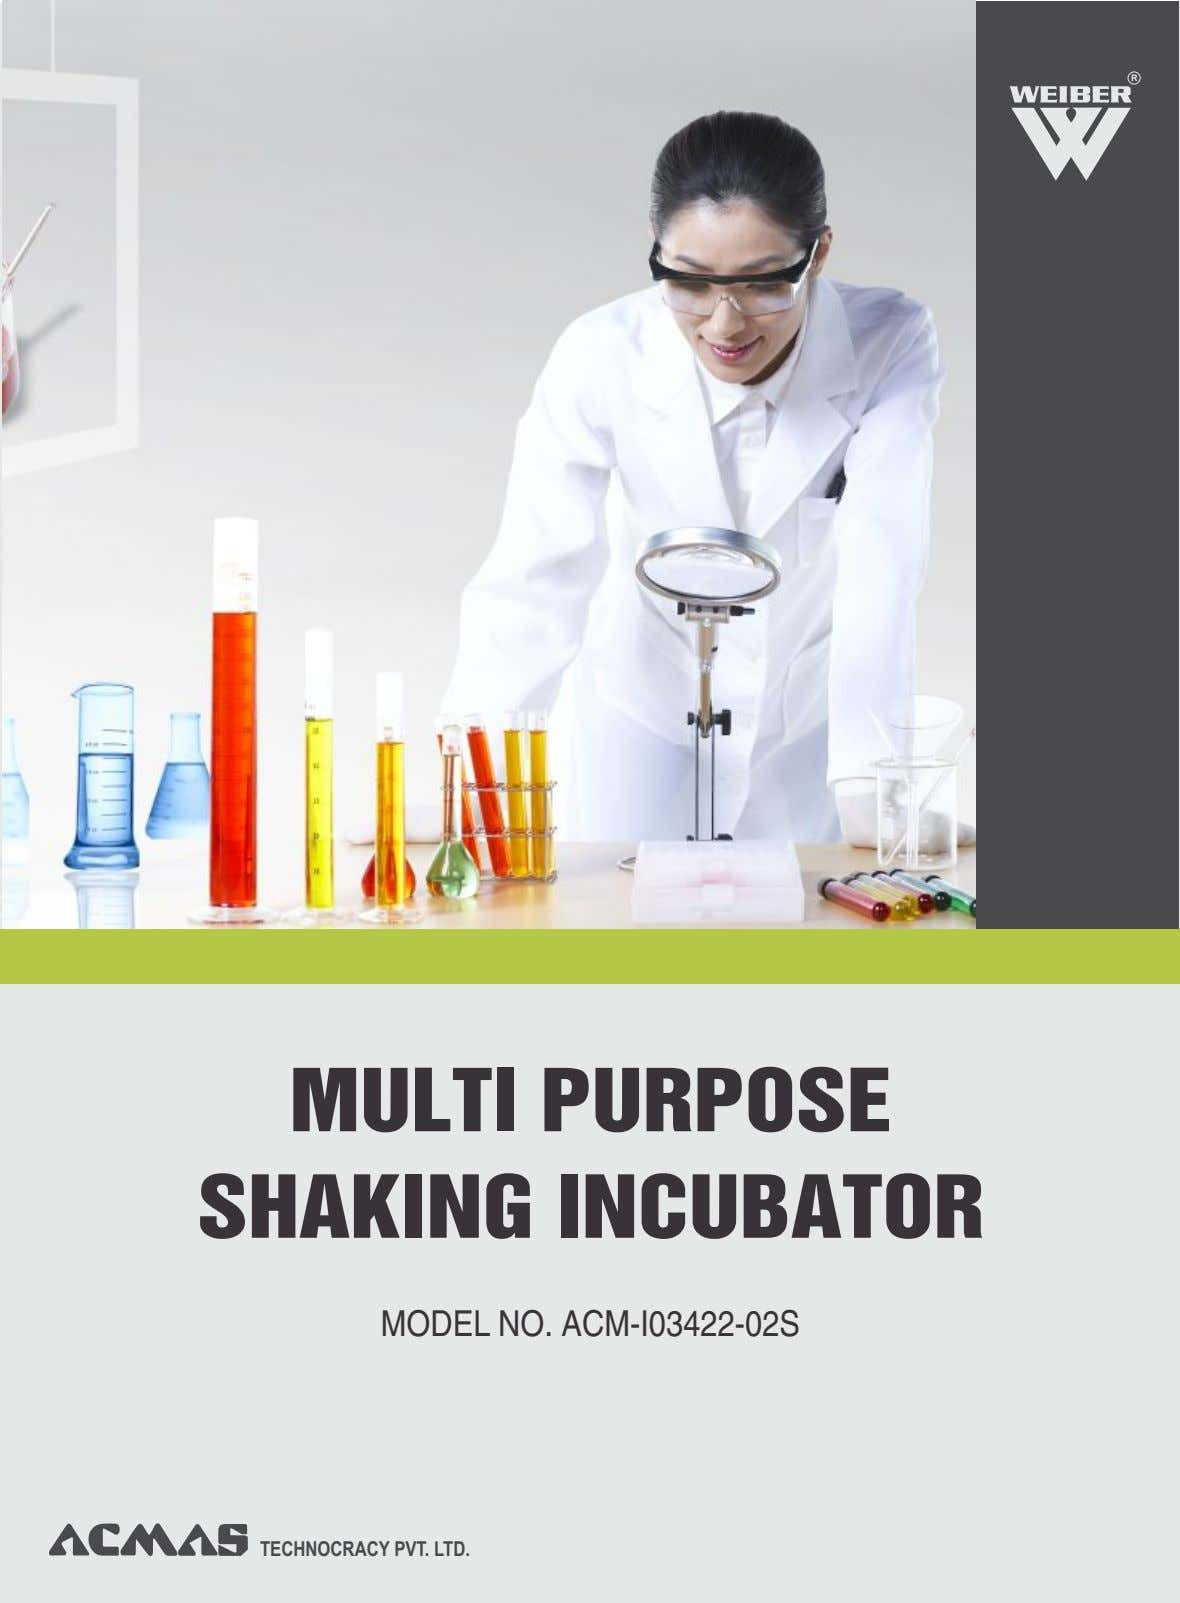 R MULTI PURPOSE SHAKING INCUBATOR MODEL NO. ACM-I03422-02S TECHNOCRACY PVT. LTD.